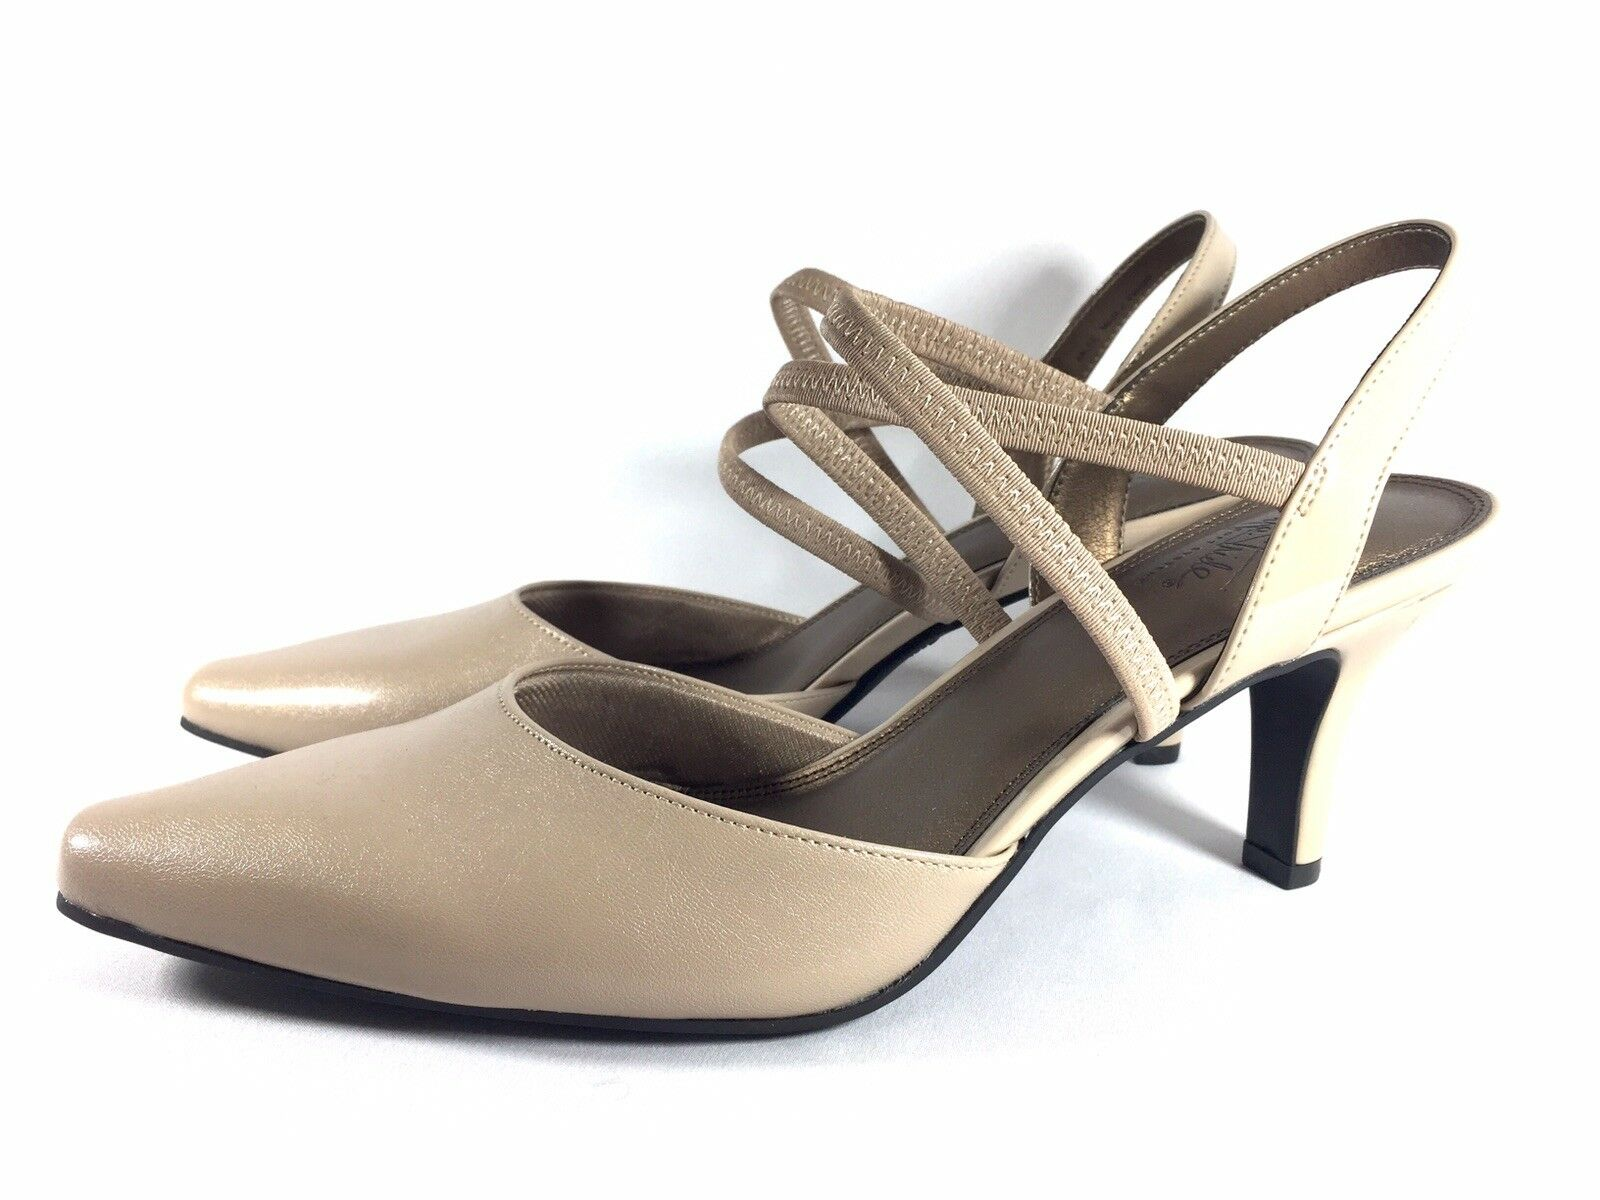 Life Stride Kalee Womens Strappy Nude Pumps Size 12 Heels shoes Pointed Toe New